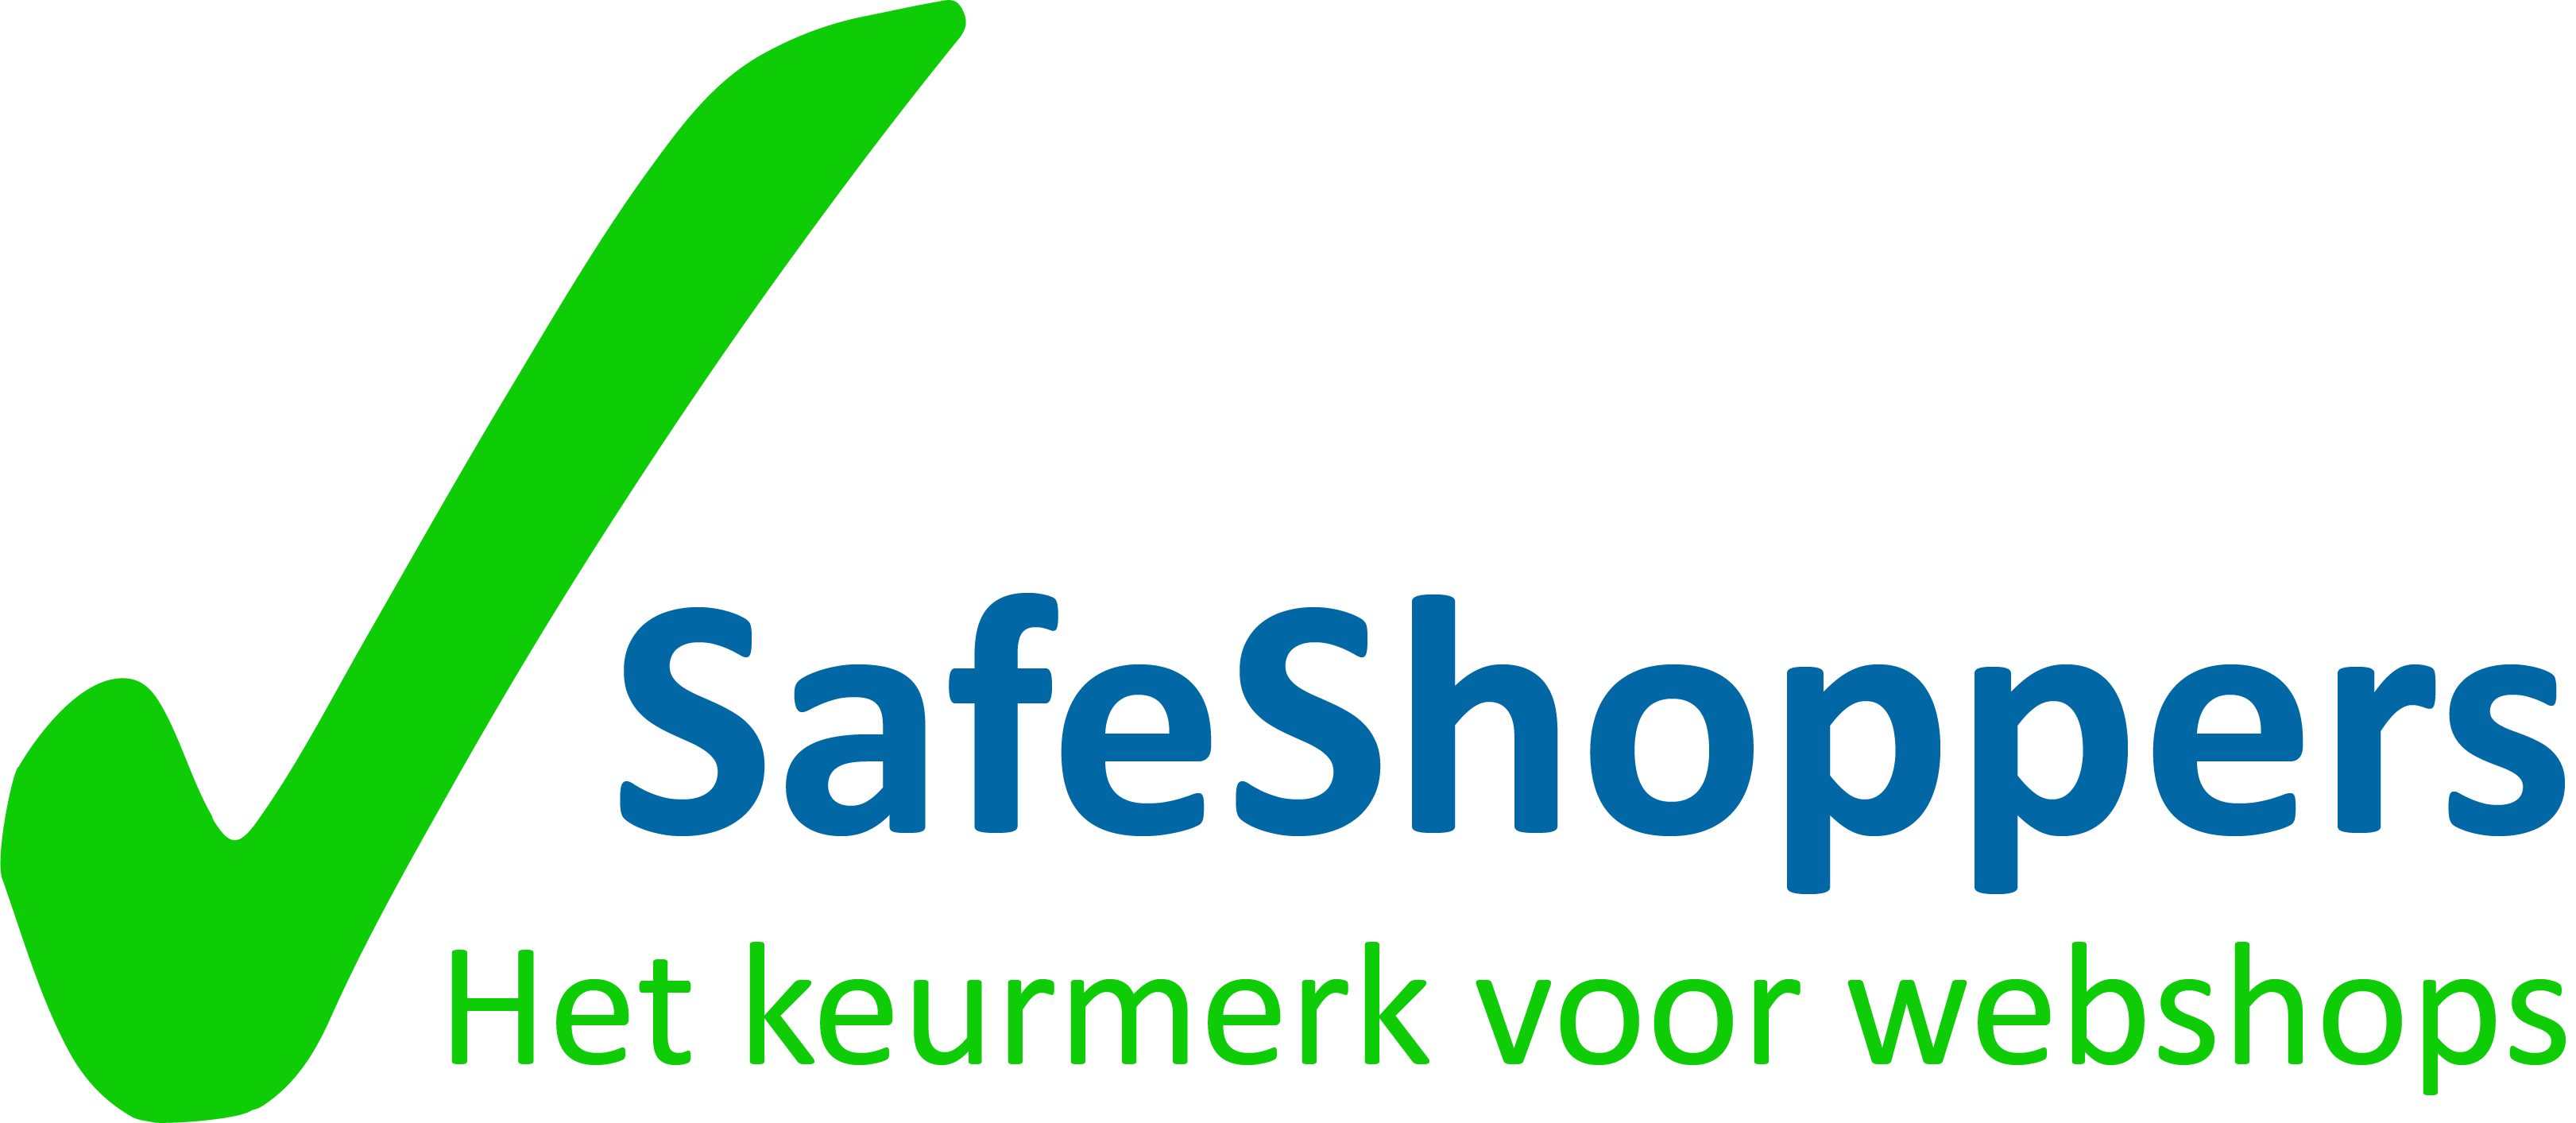 SafeShoppers